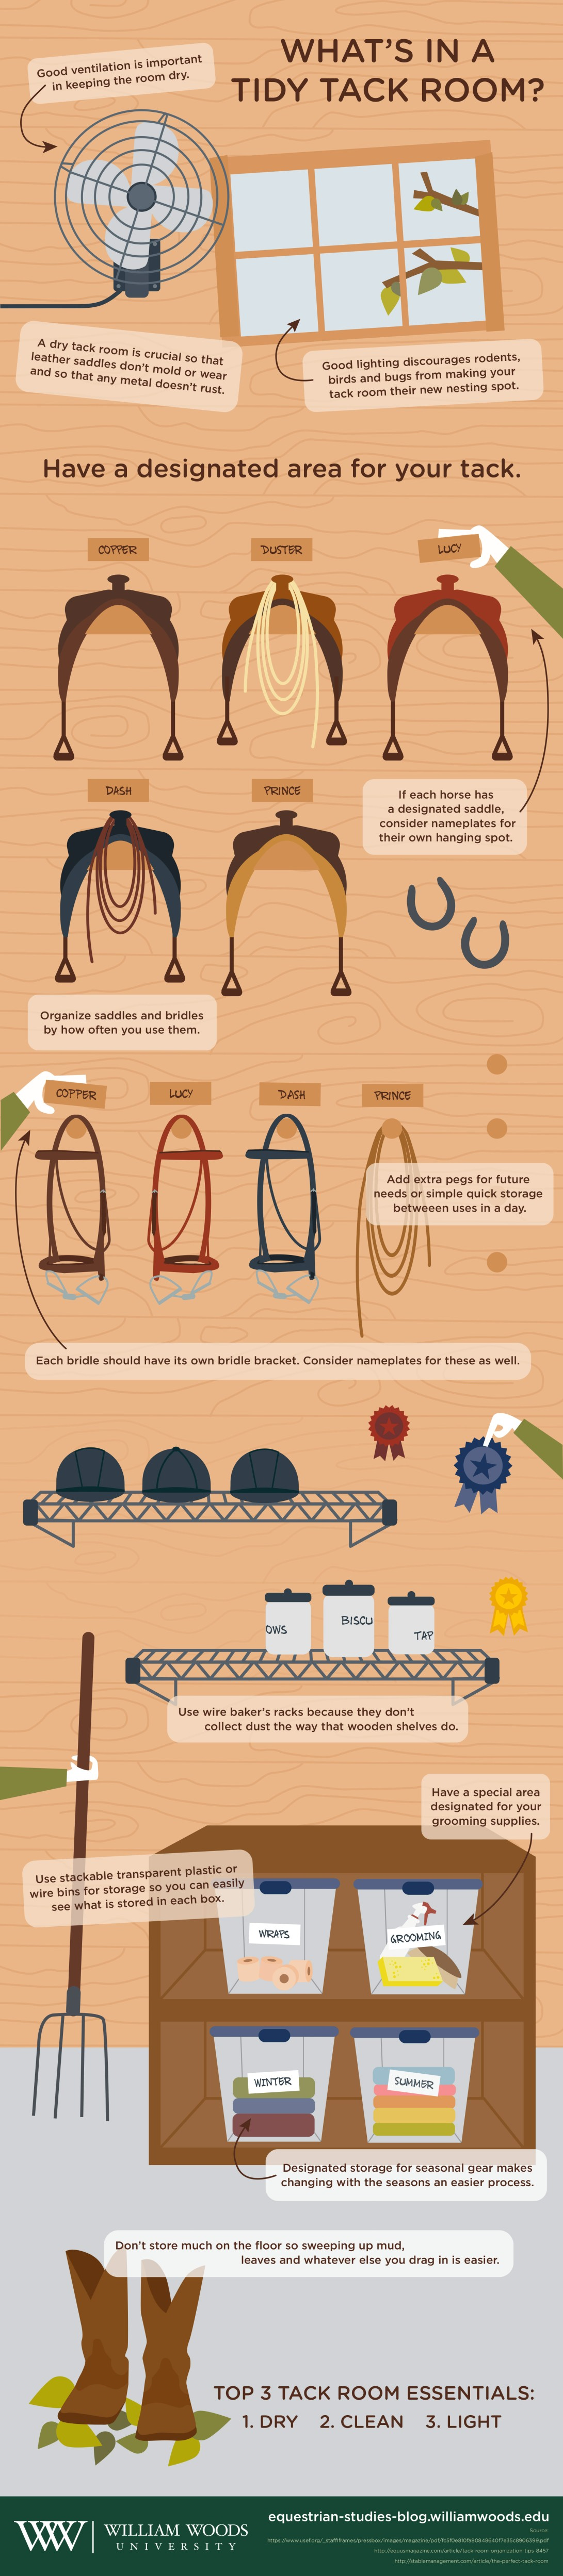 equestrian.studies.infographic